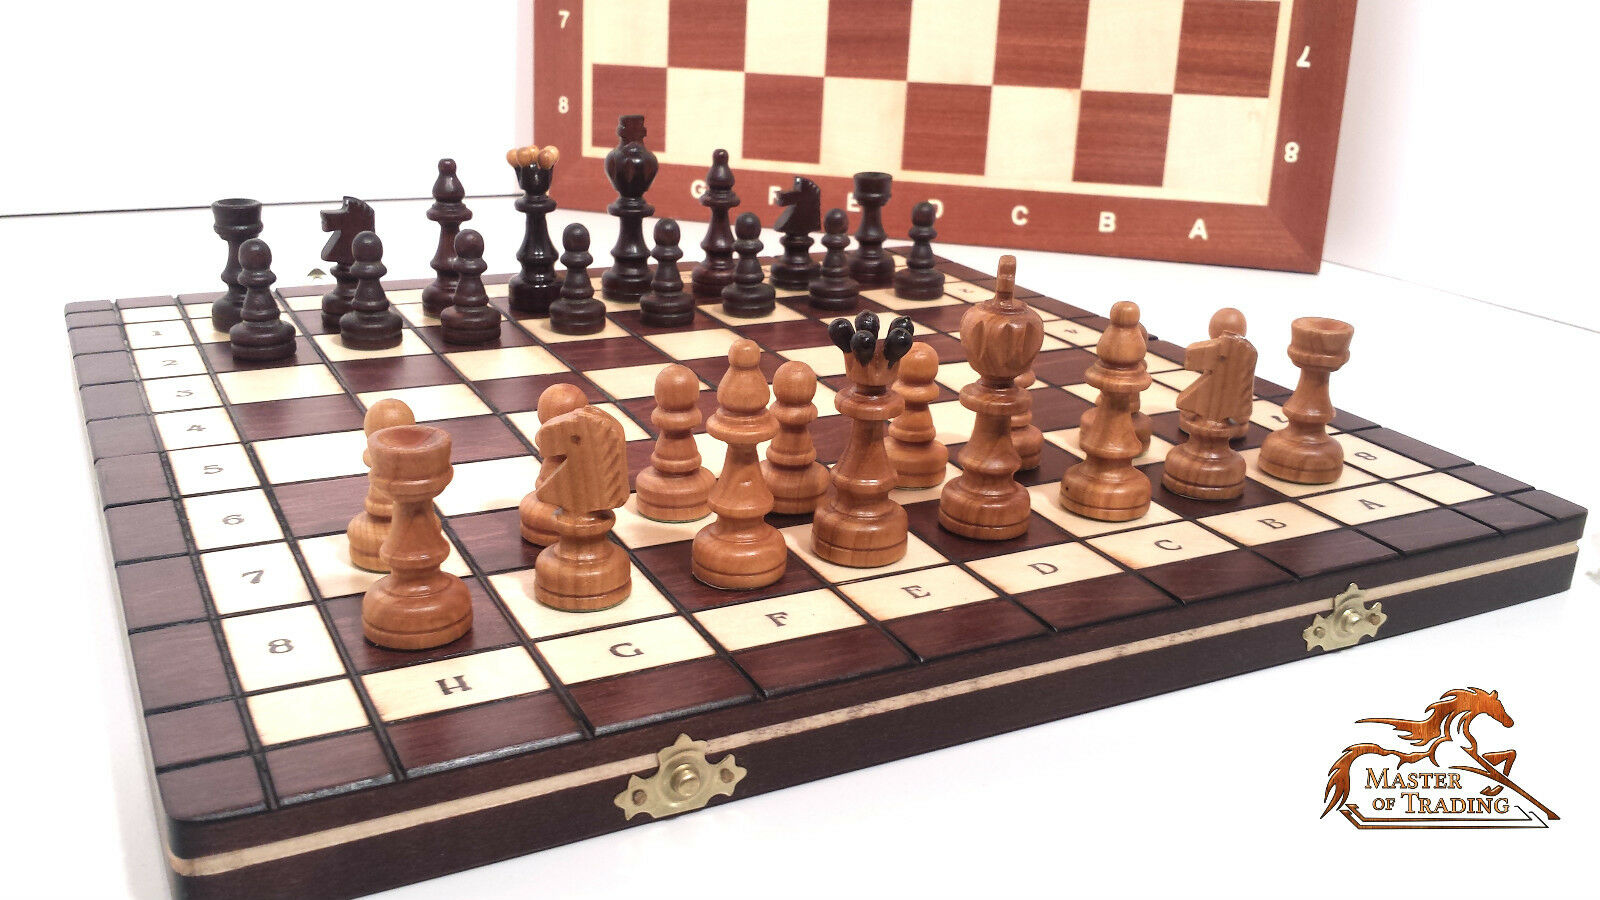 Large Unique Great Cherry Wooden Chess Set Hand Crafted